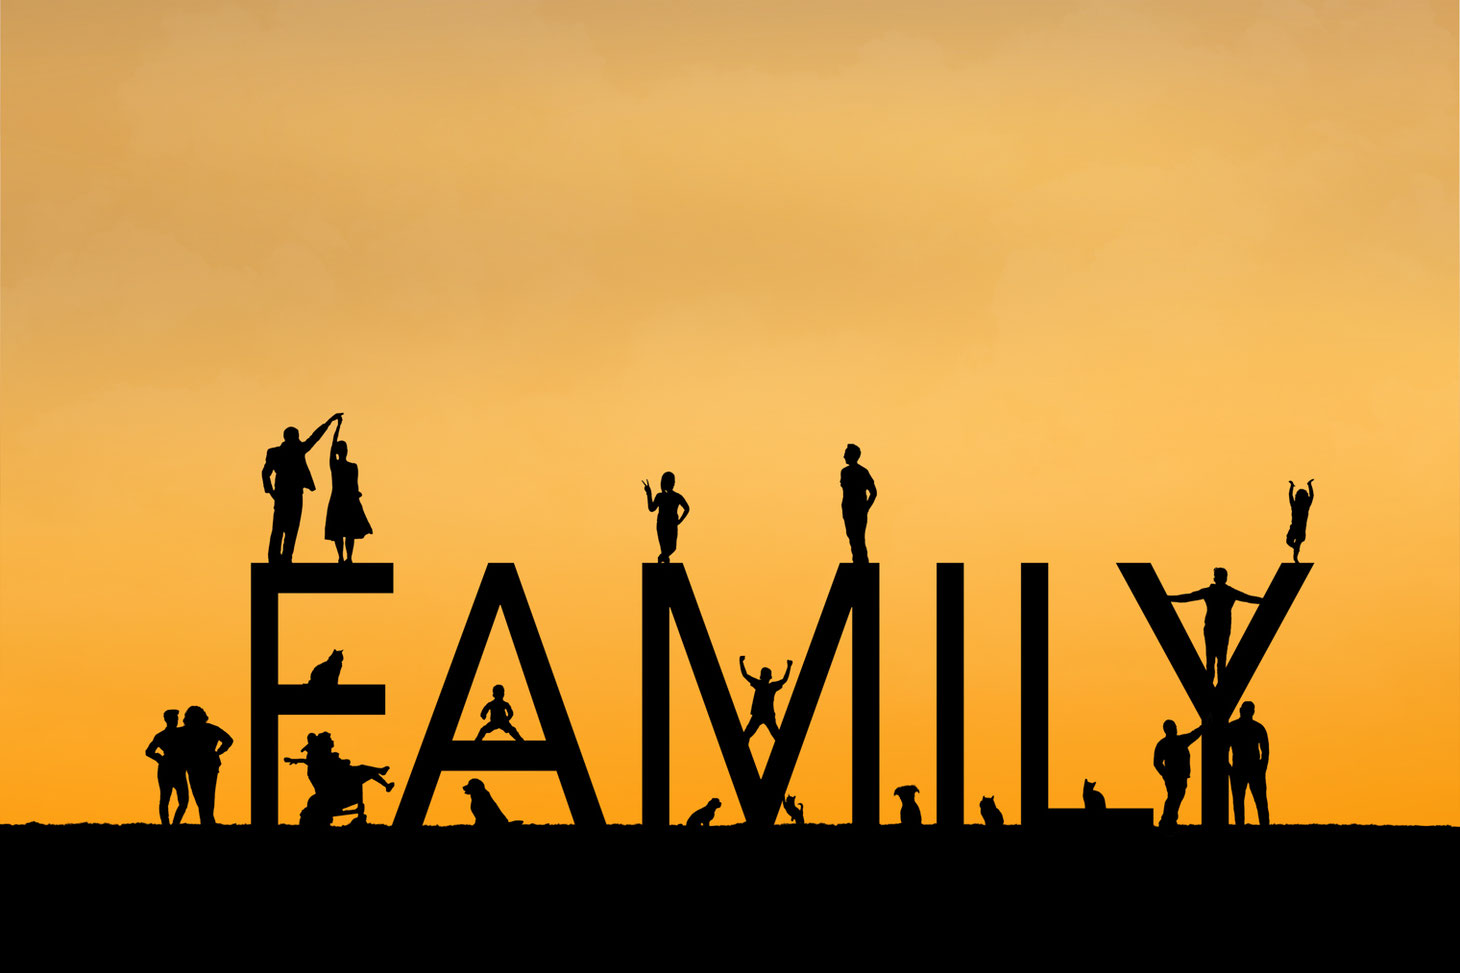 silhouettes of 13 people and 7 pets arranged around the letters FAMILY. Sky is orange.